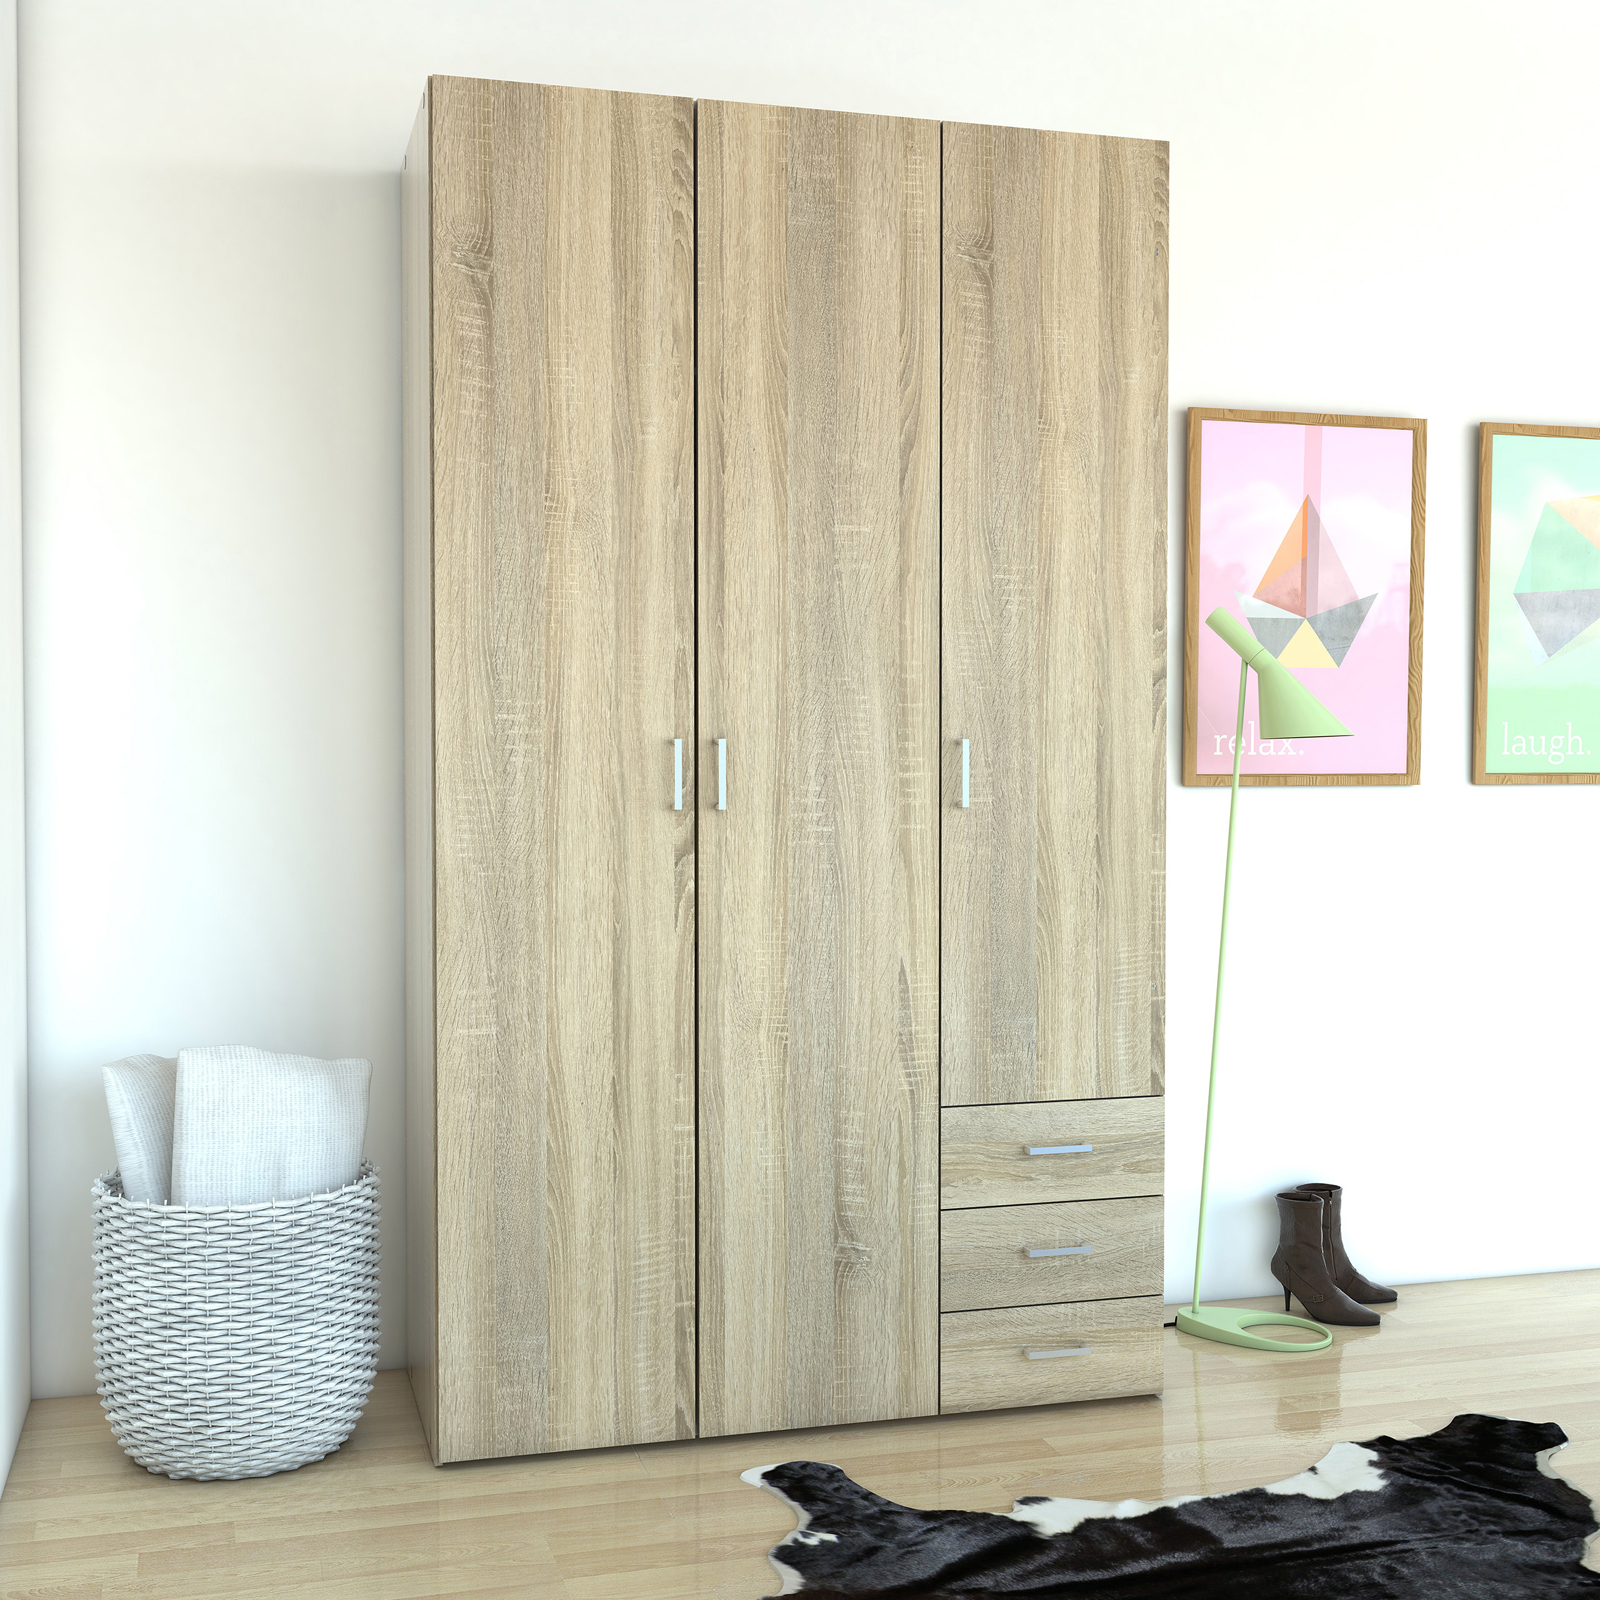 & Tvilum Space 3 Drawer and 3 Door Armoire | Hayneedle Pezcame.Com